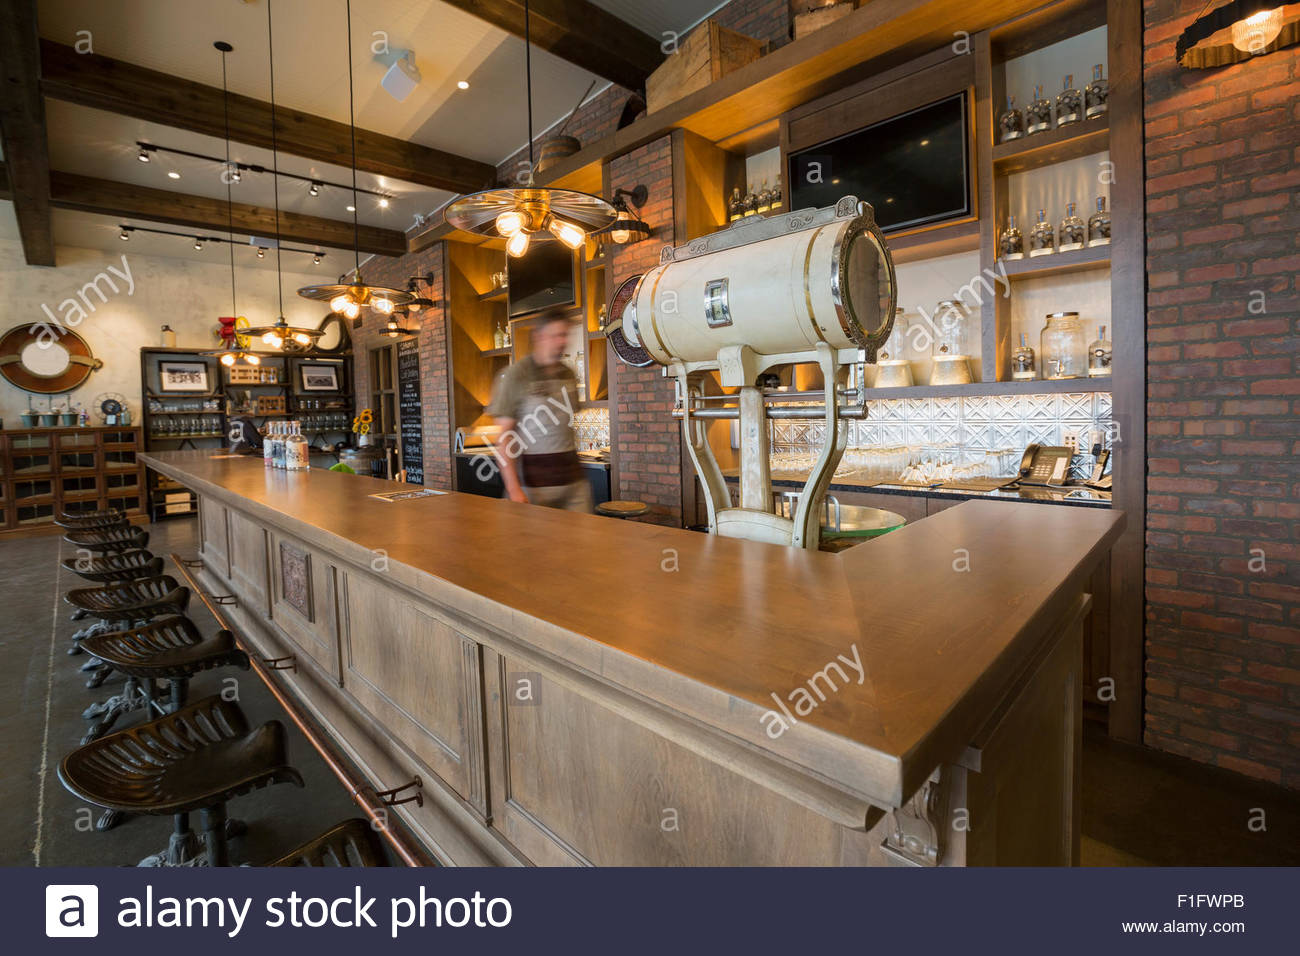 Worker walking behind counter at distillery bar - Stock Image